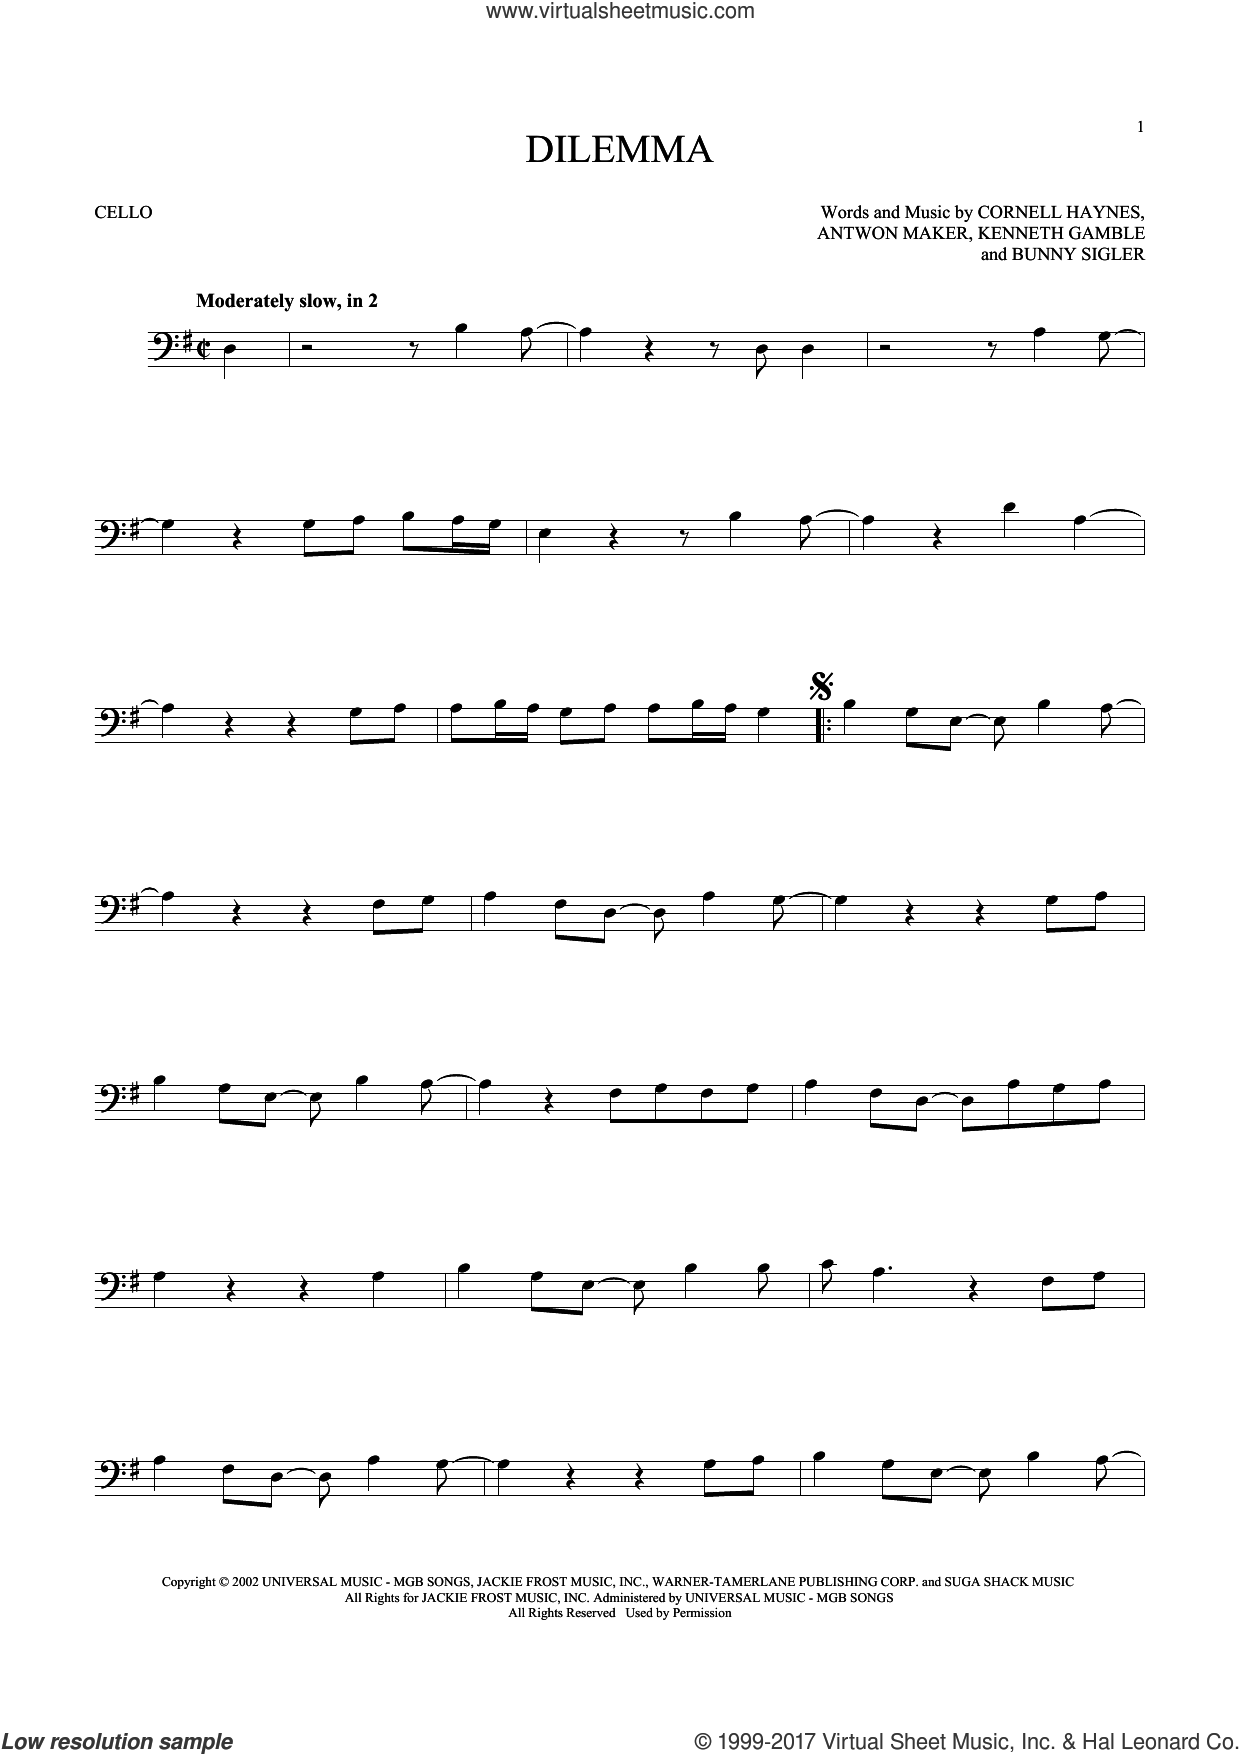 Dilemma sheet music for cello solo by Nelly featuring Kelly Rowland, Antwon Maker, Bunny Sigler, Cornell Haynes and Kenneth Gamble, intermediate skill level